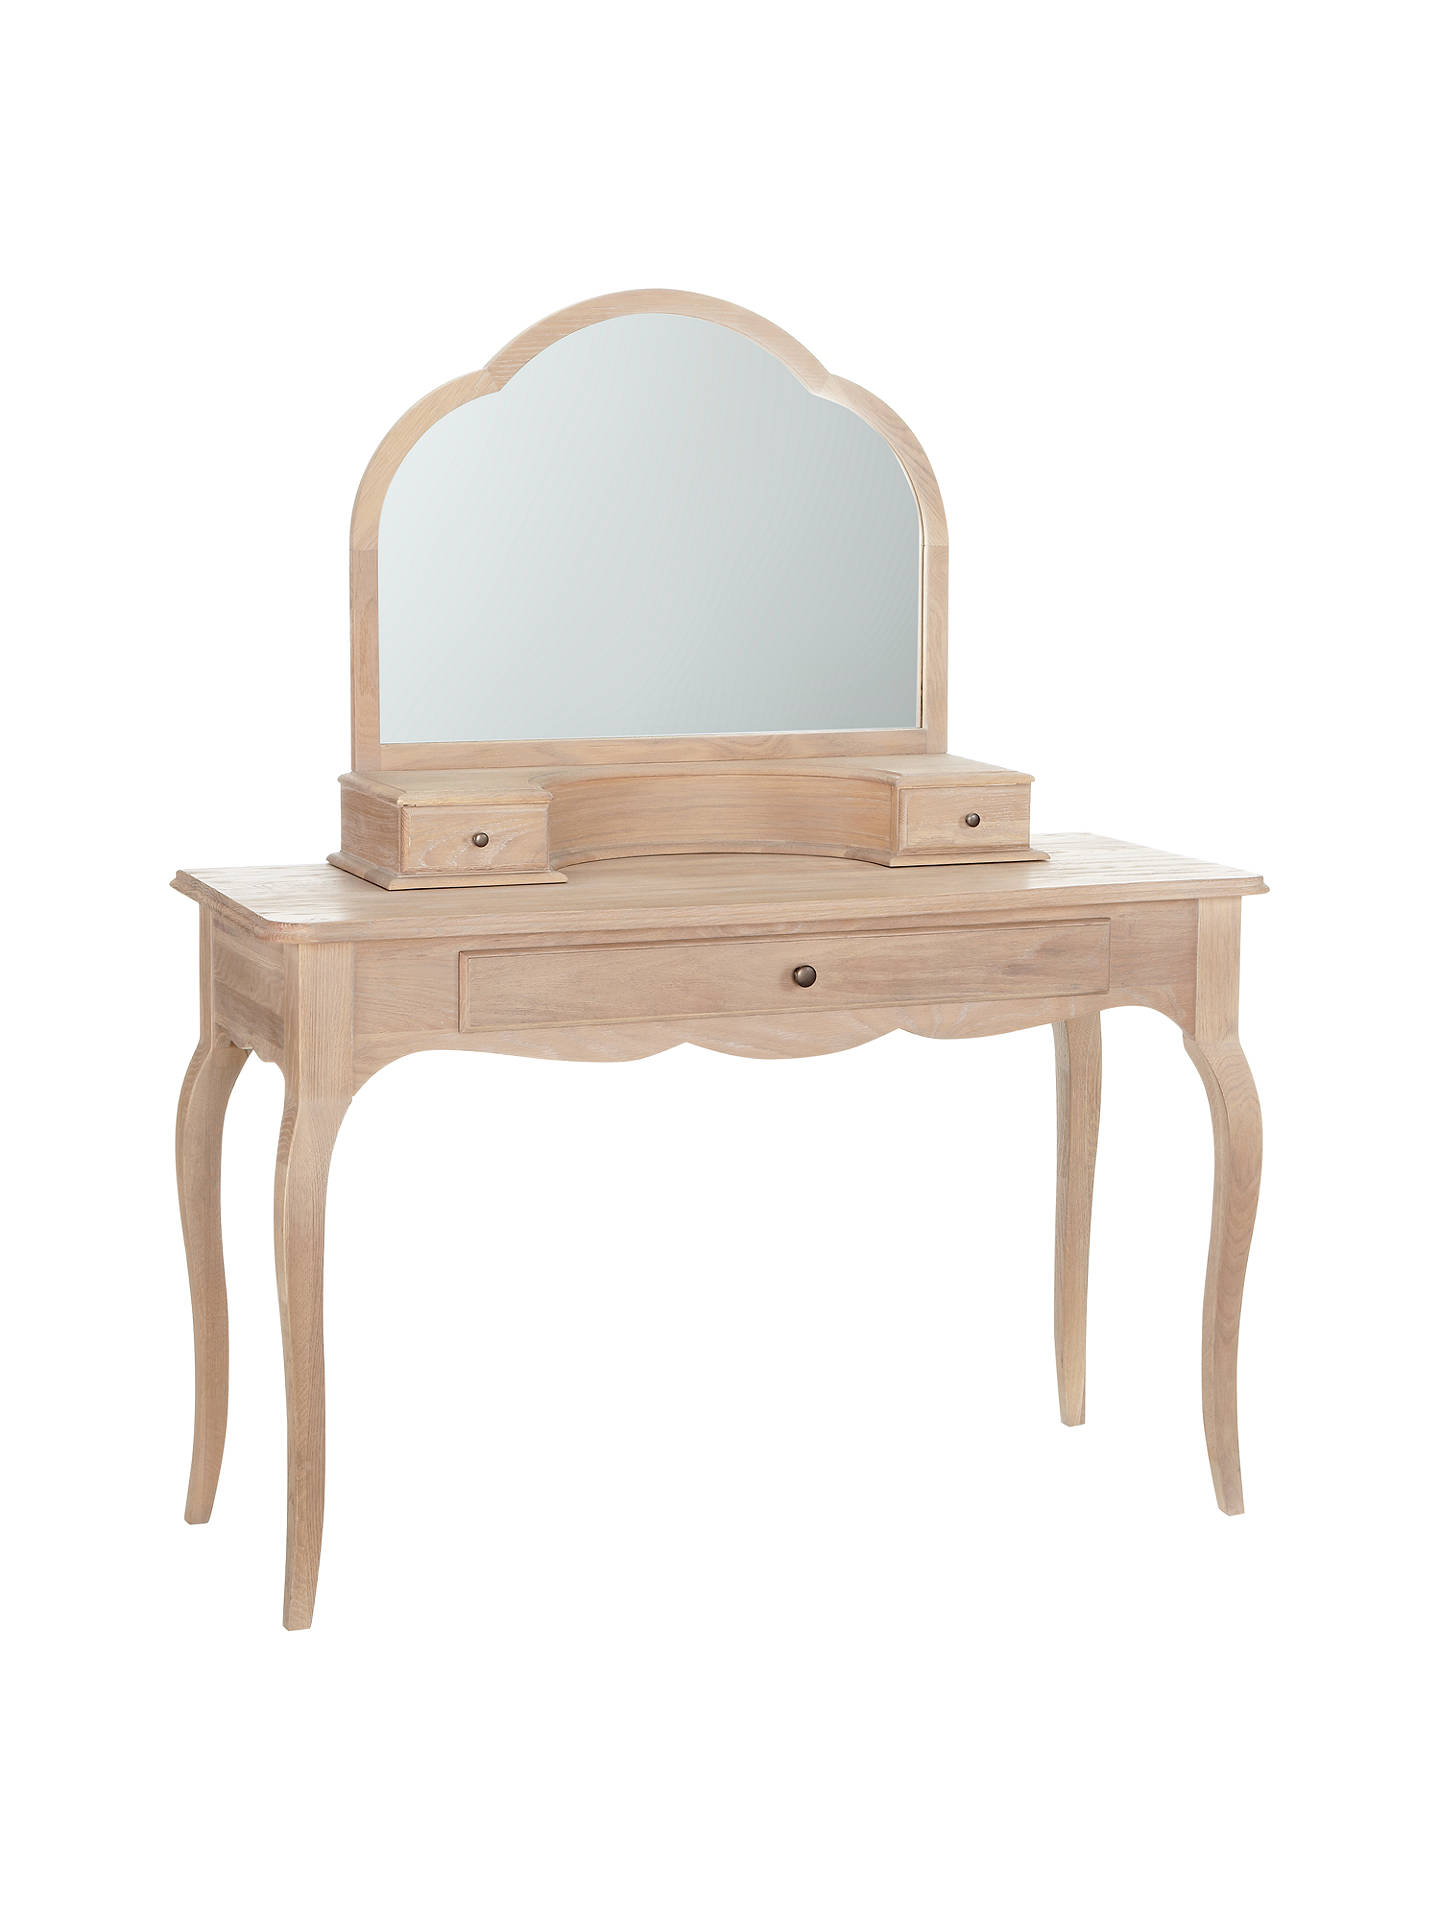 BuyJohn Lewis & Partners Etienne Gallery Mirror, Oak, 68 x 83.5cm Online at johnlewis.com